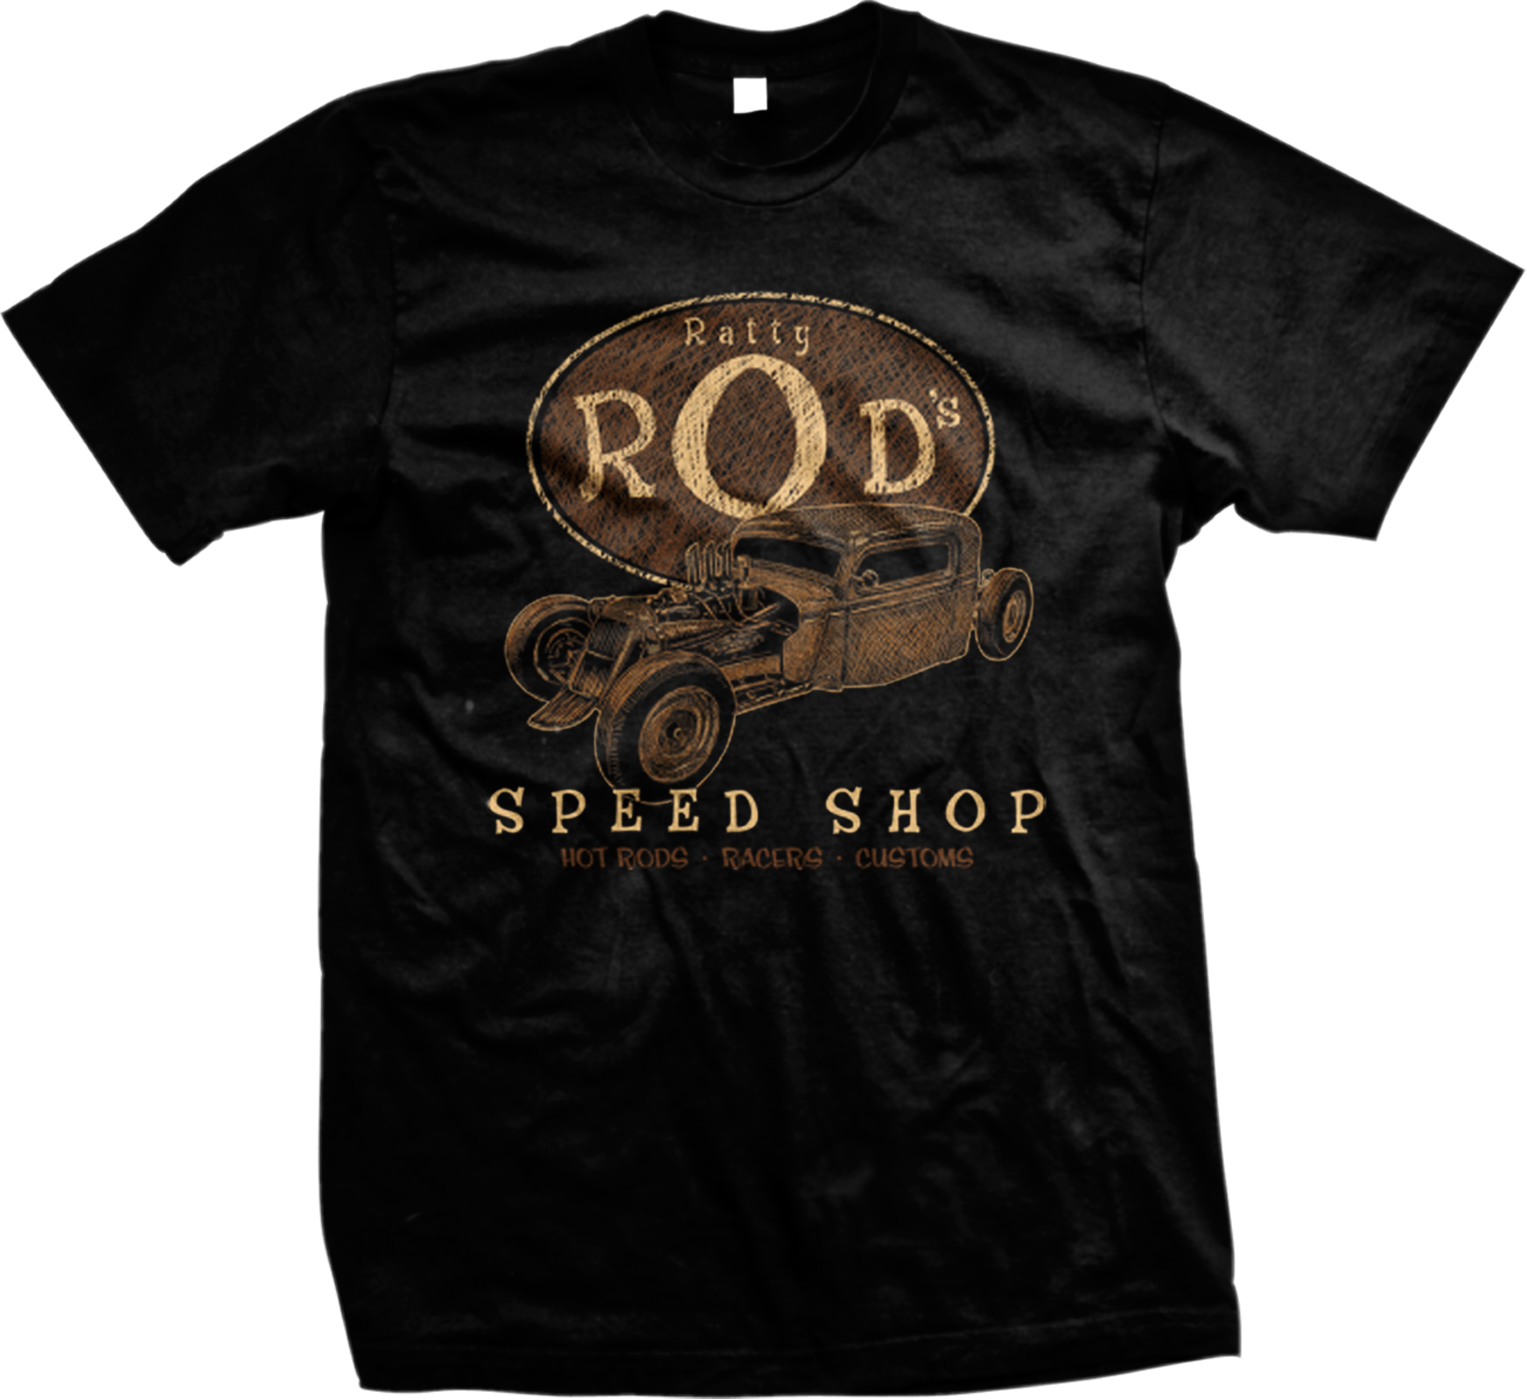 Ratty rod 39 s speed shop hot rods racers customs vintage for Shop mens t shirts